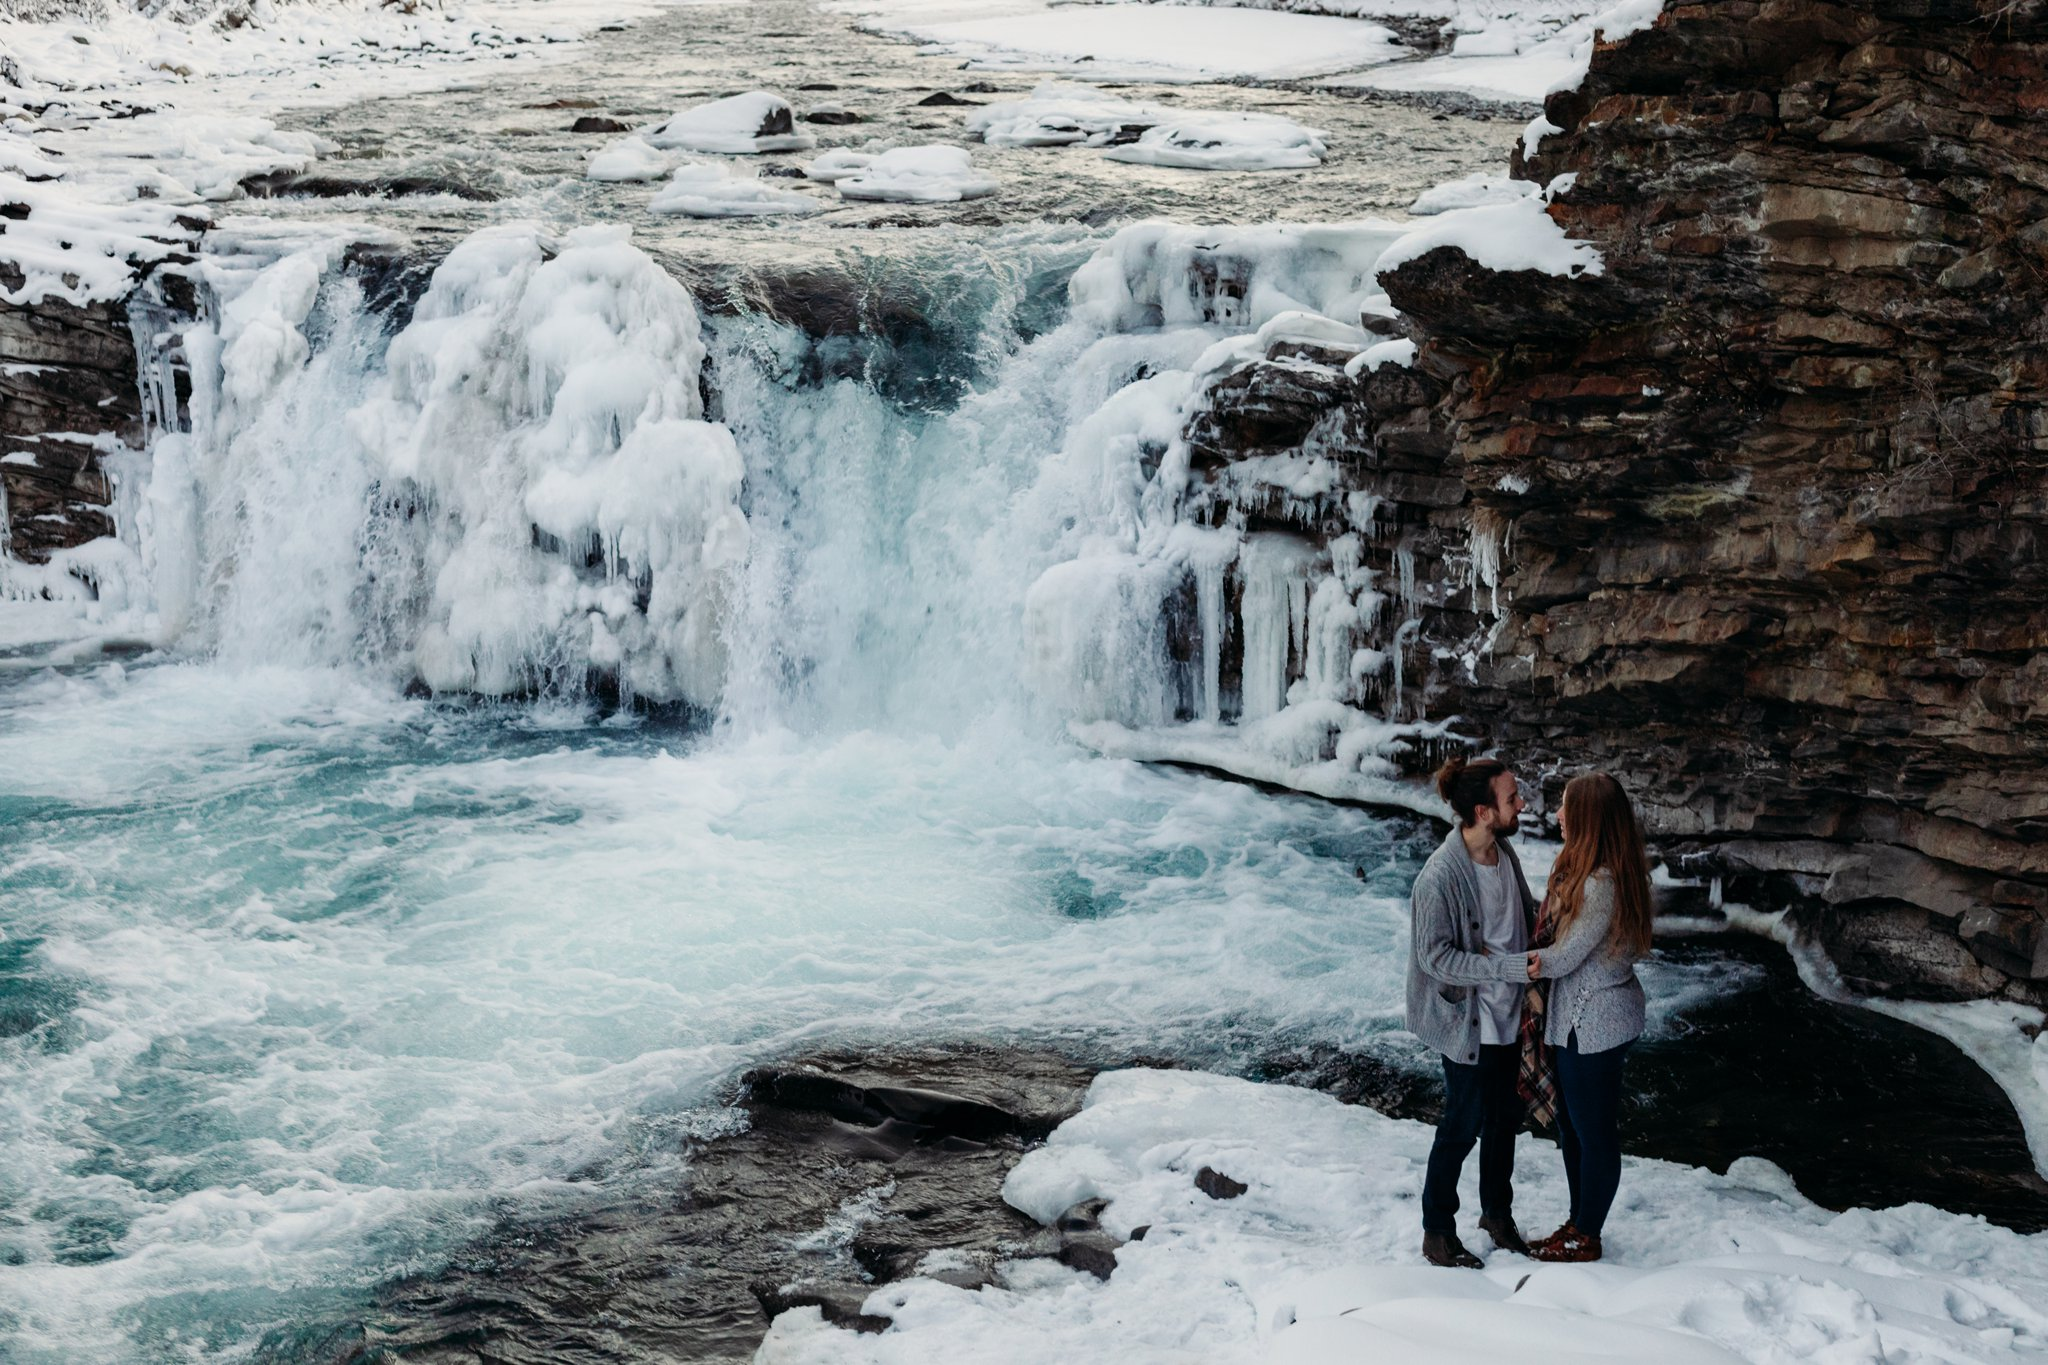 AshleyDaphnePhotography Calgary Photographer Wedding Engagement Sheep River Provincial Park Photos Kananskis Rocky Mountain Canmore Photographer_0078.jpg